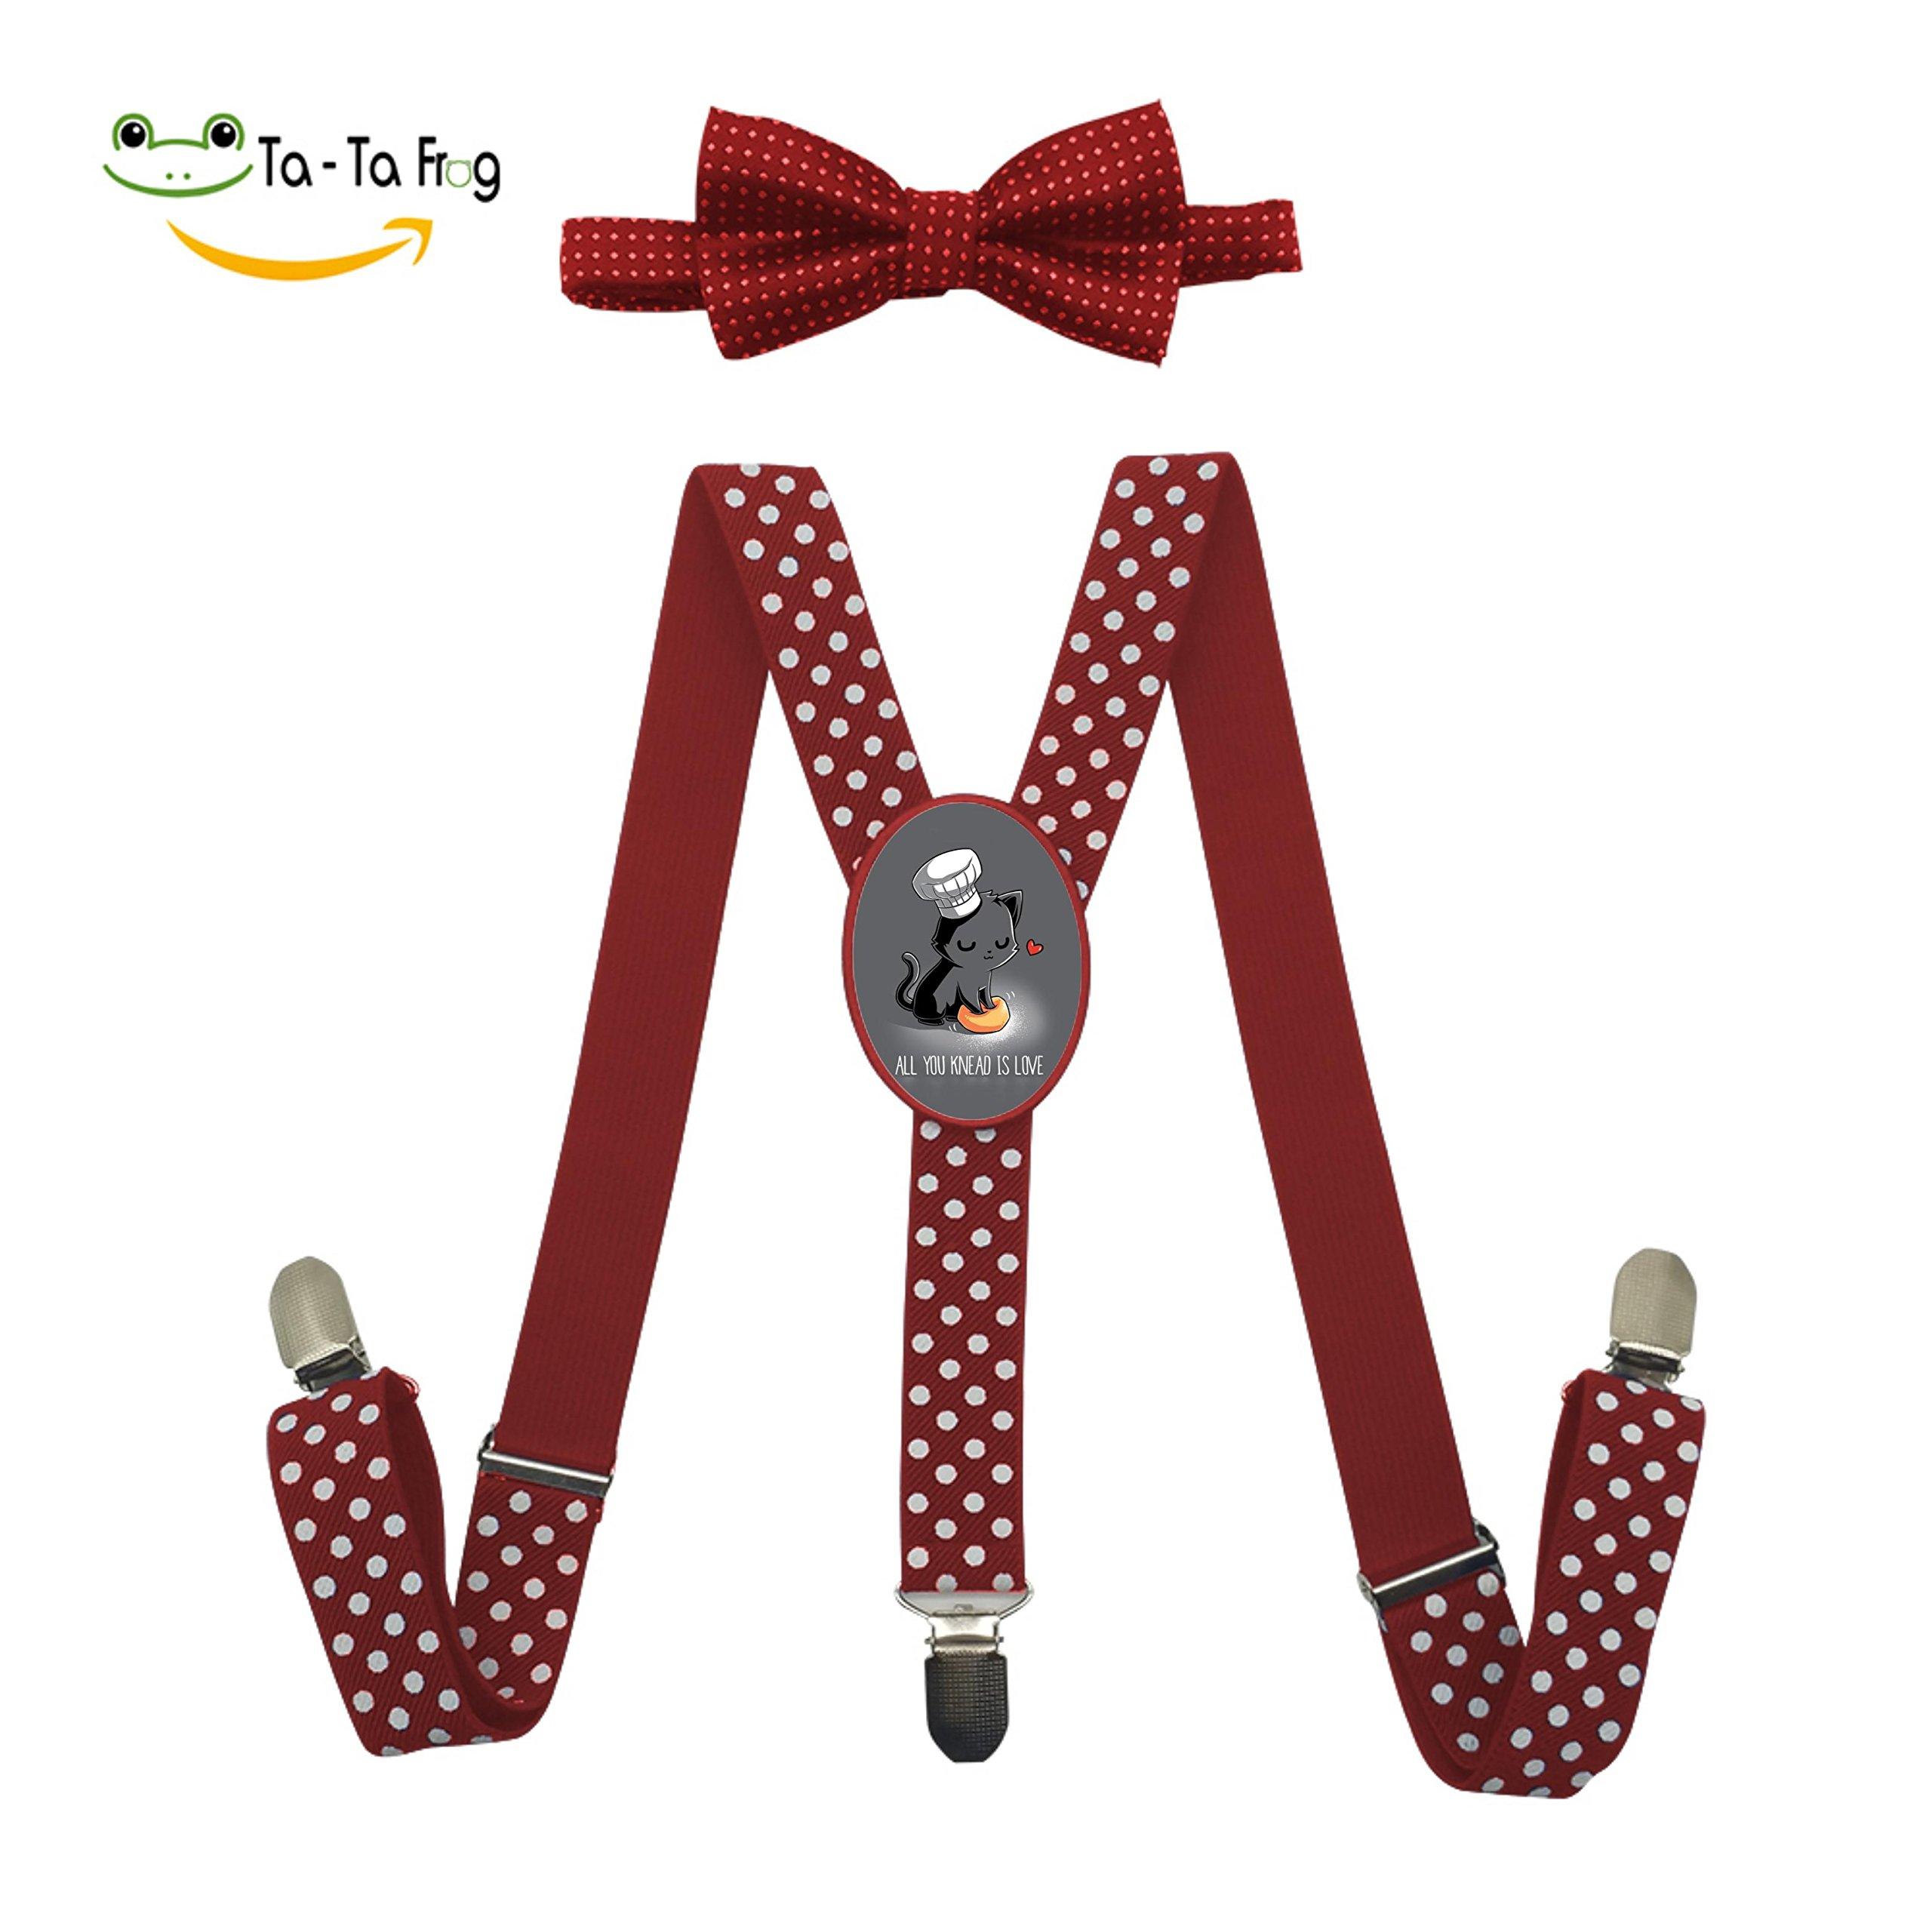 Grrry Children All you knead is love Adjustable Y-Back Suspender+Bow Tie Red